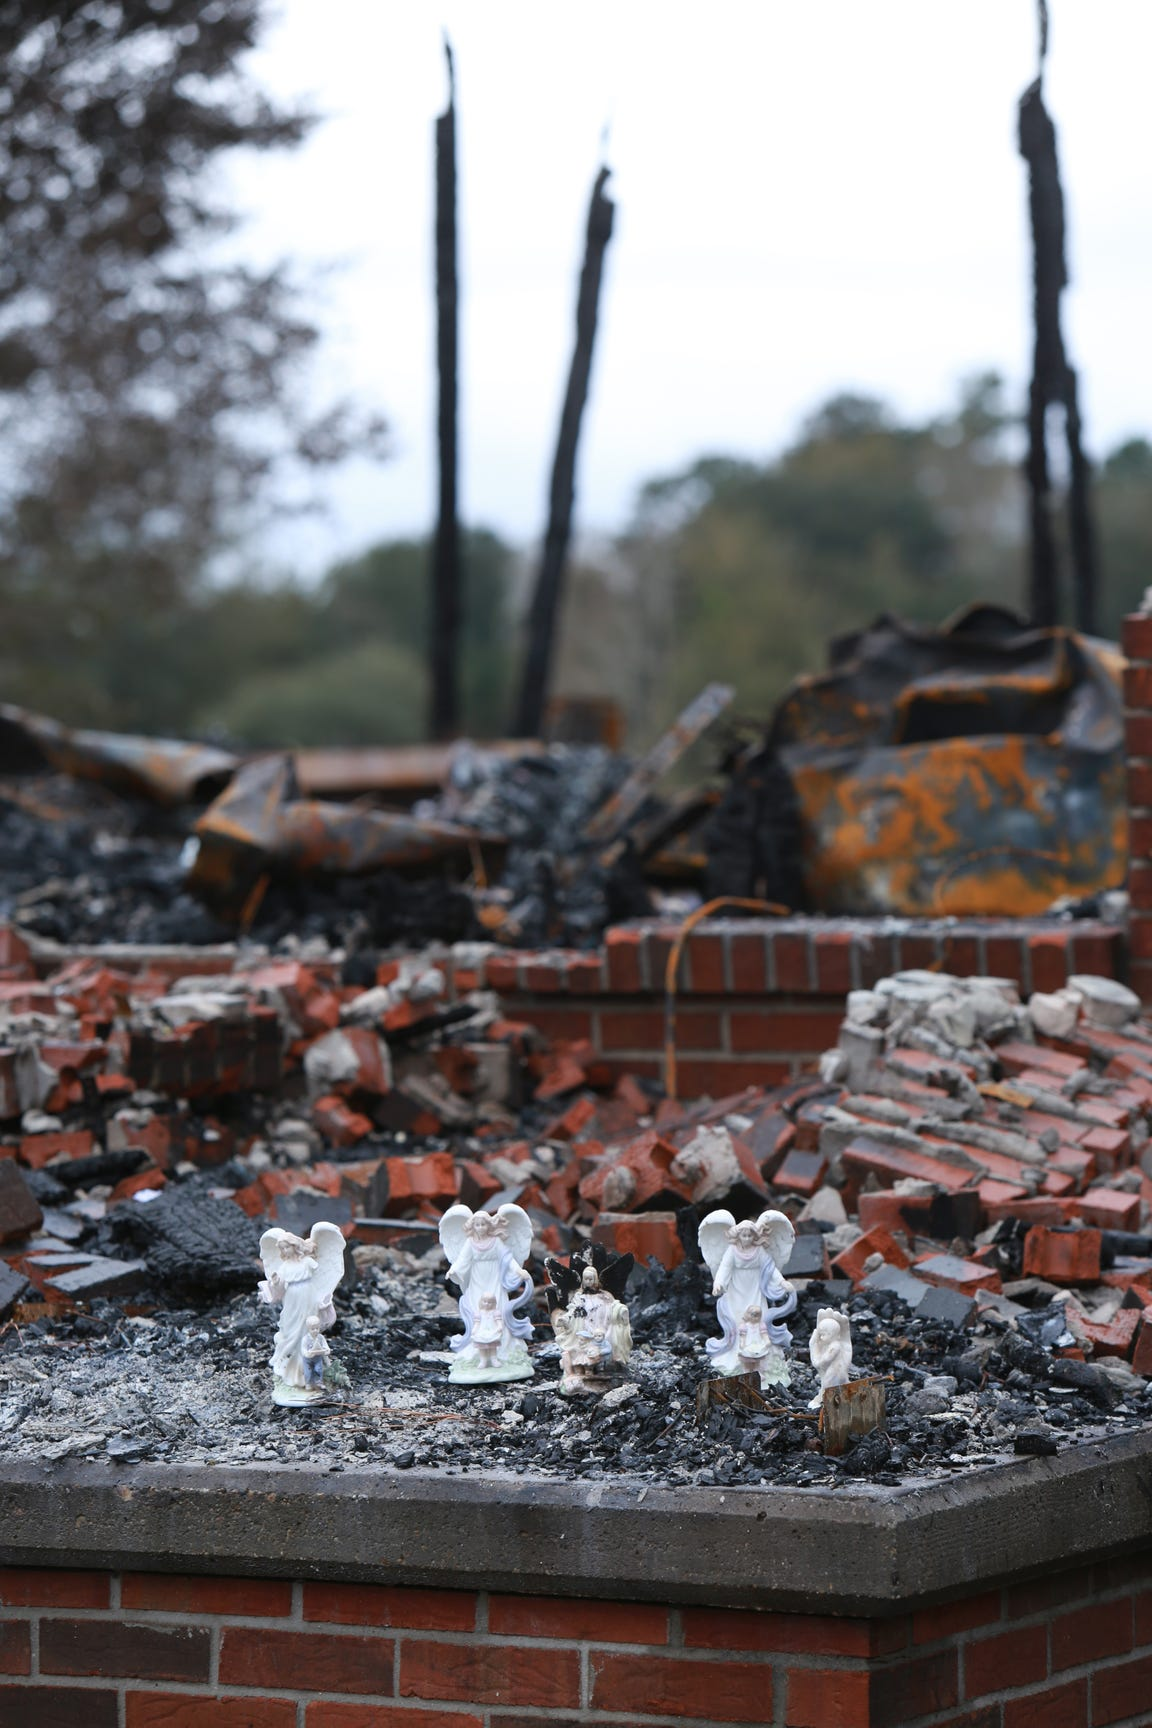 The only possessions that were left unscathed from a fire that destroyed the Haas family home in Kiln, Miss., were four blessed angel figurines guarding children. A fifth angel also remained. Her backside, her wings, were burned in the fire on Nov. 25, 2019.